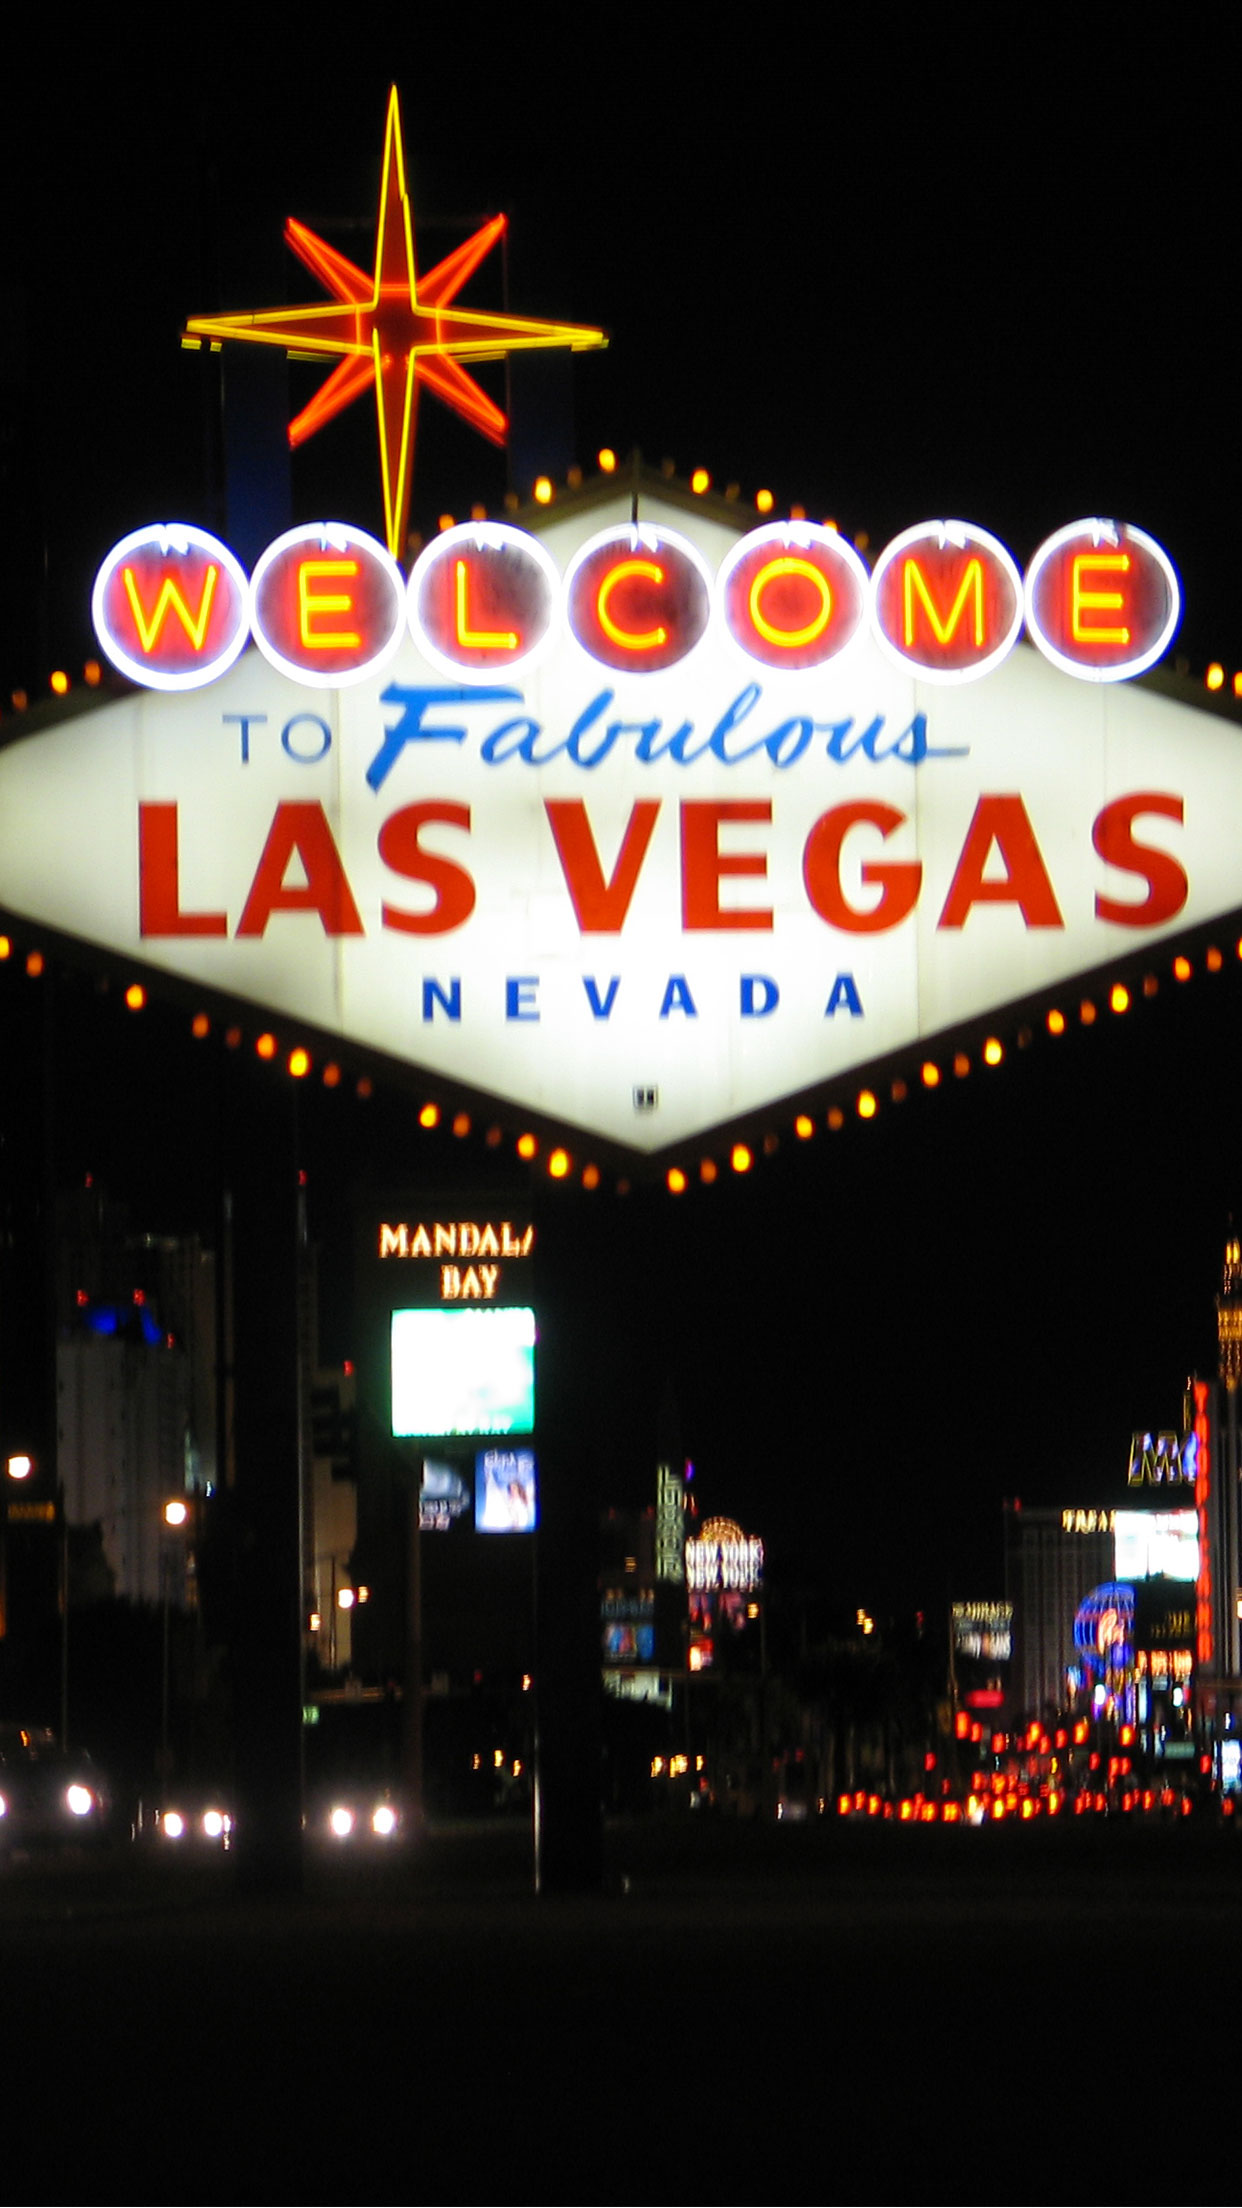 New Girl Wallpaper Download Hd Las Vegas Welcome Wallpaper For Iphone X 8 7 6 Free